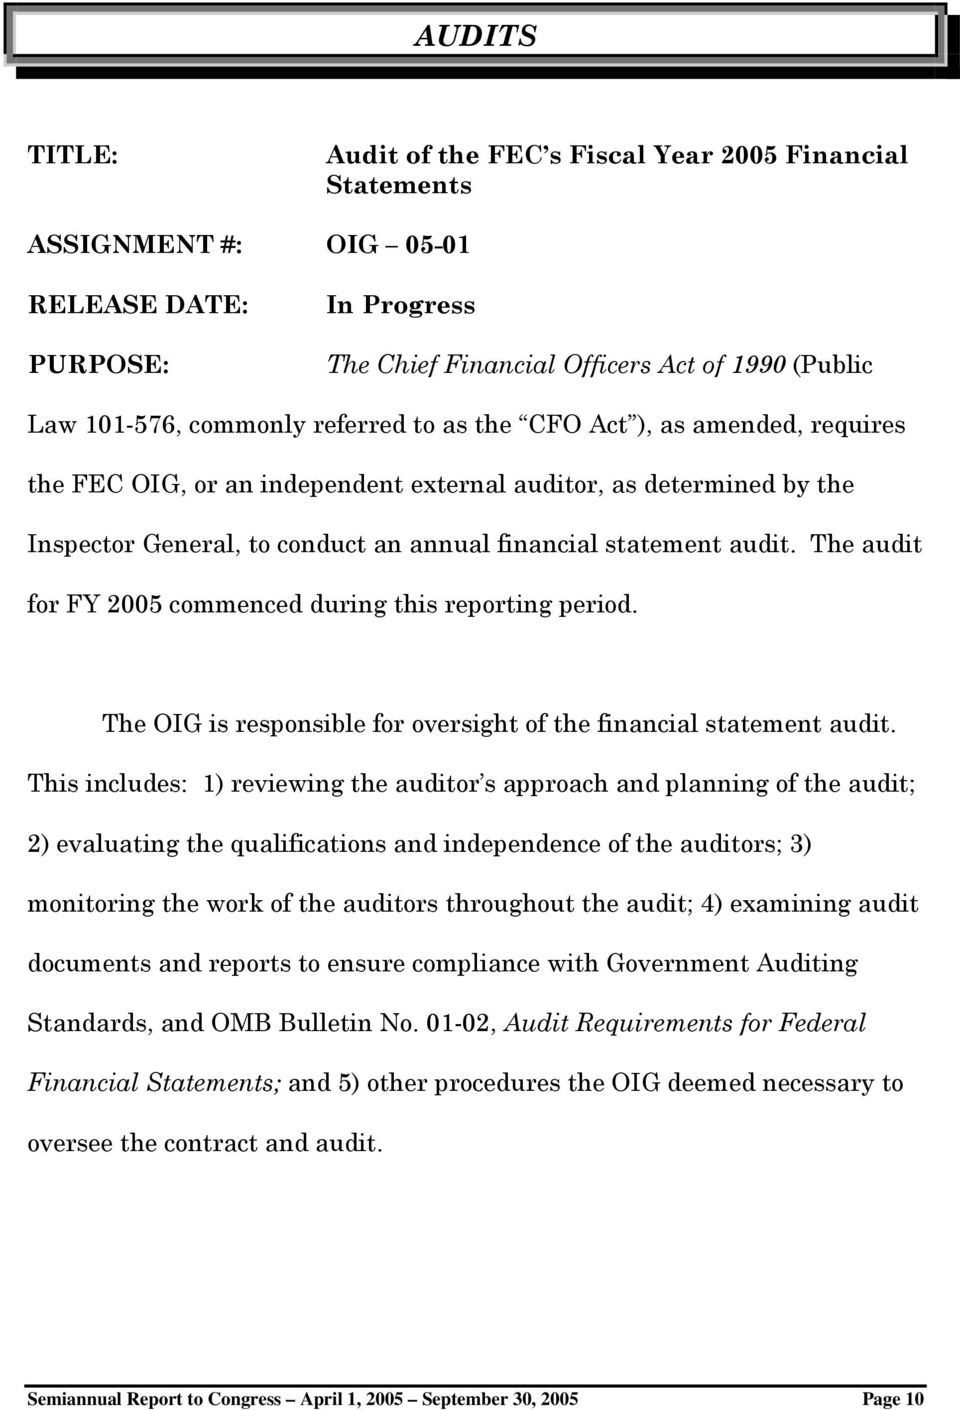 The audit for FY 2005 commenced during this reporting period. The OIG is responsible for oversight of the financial statement audit.